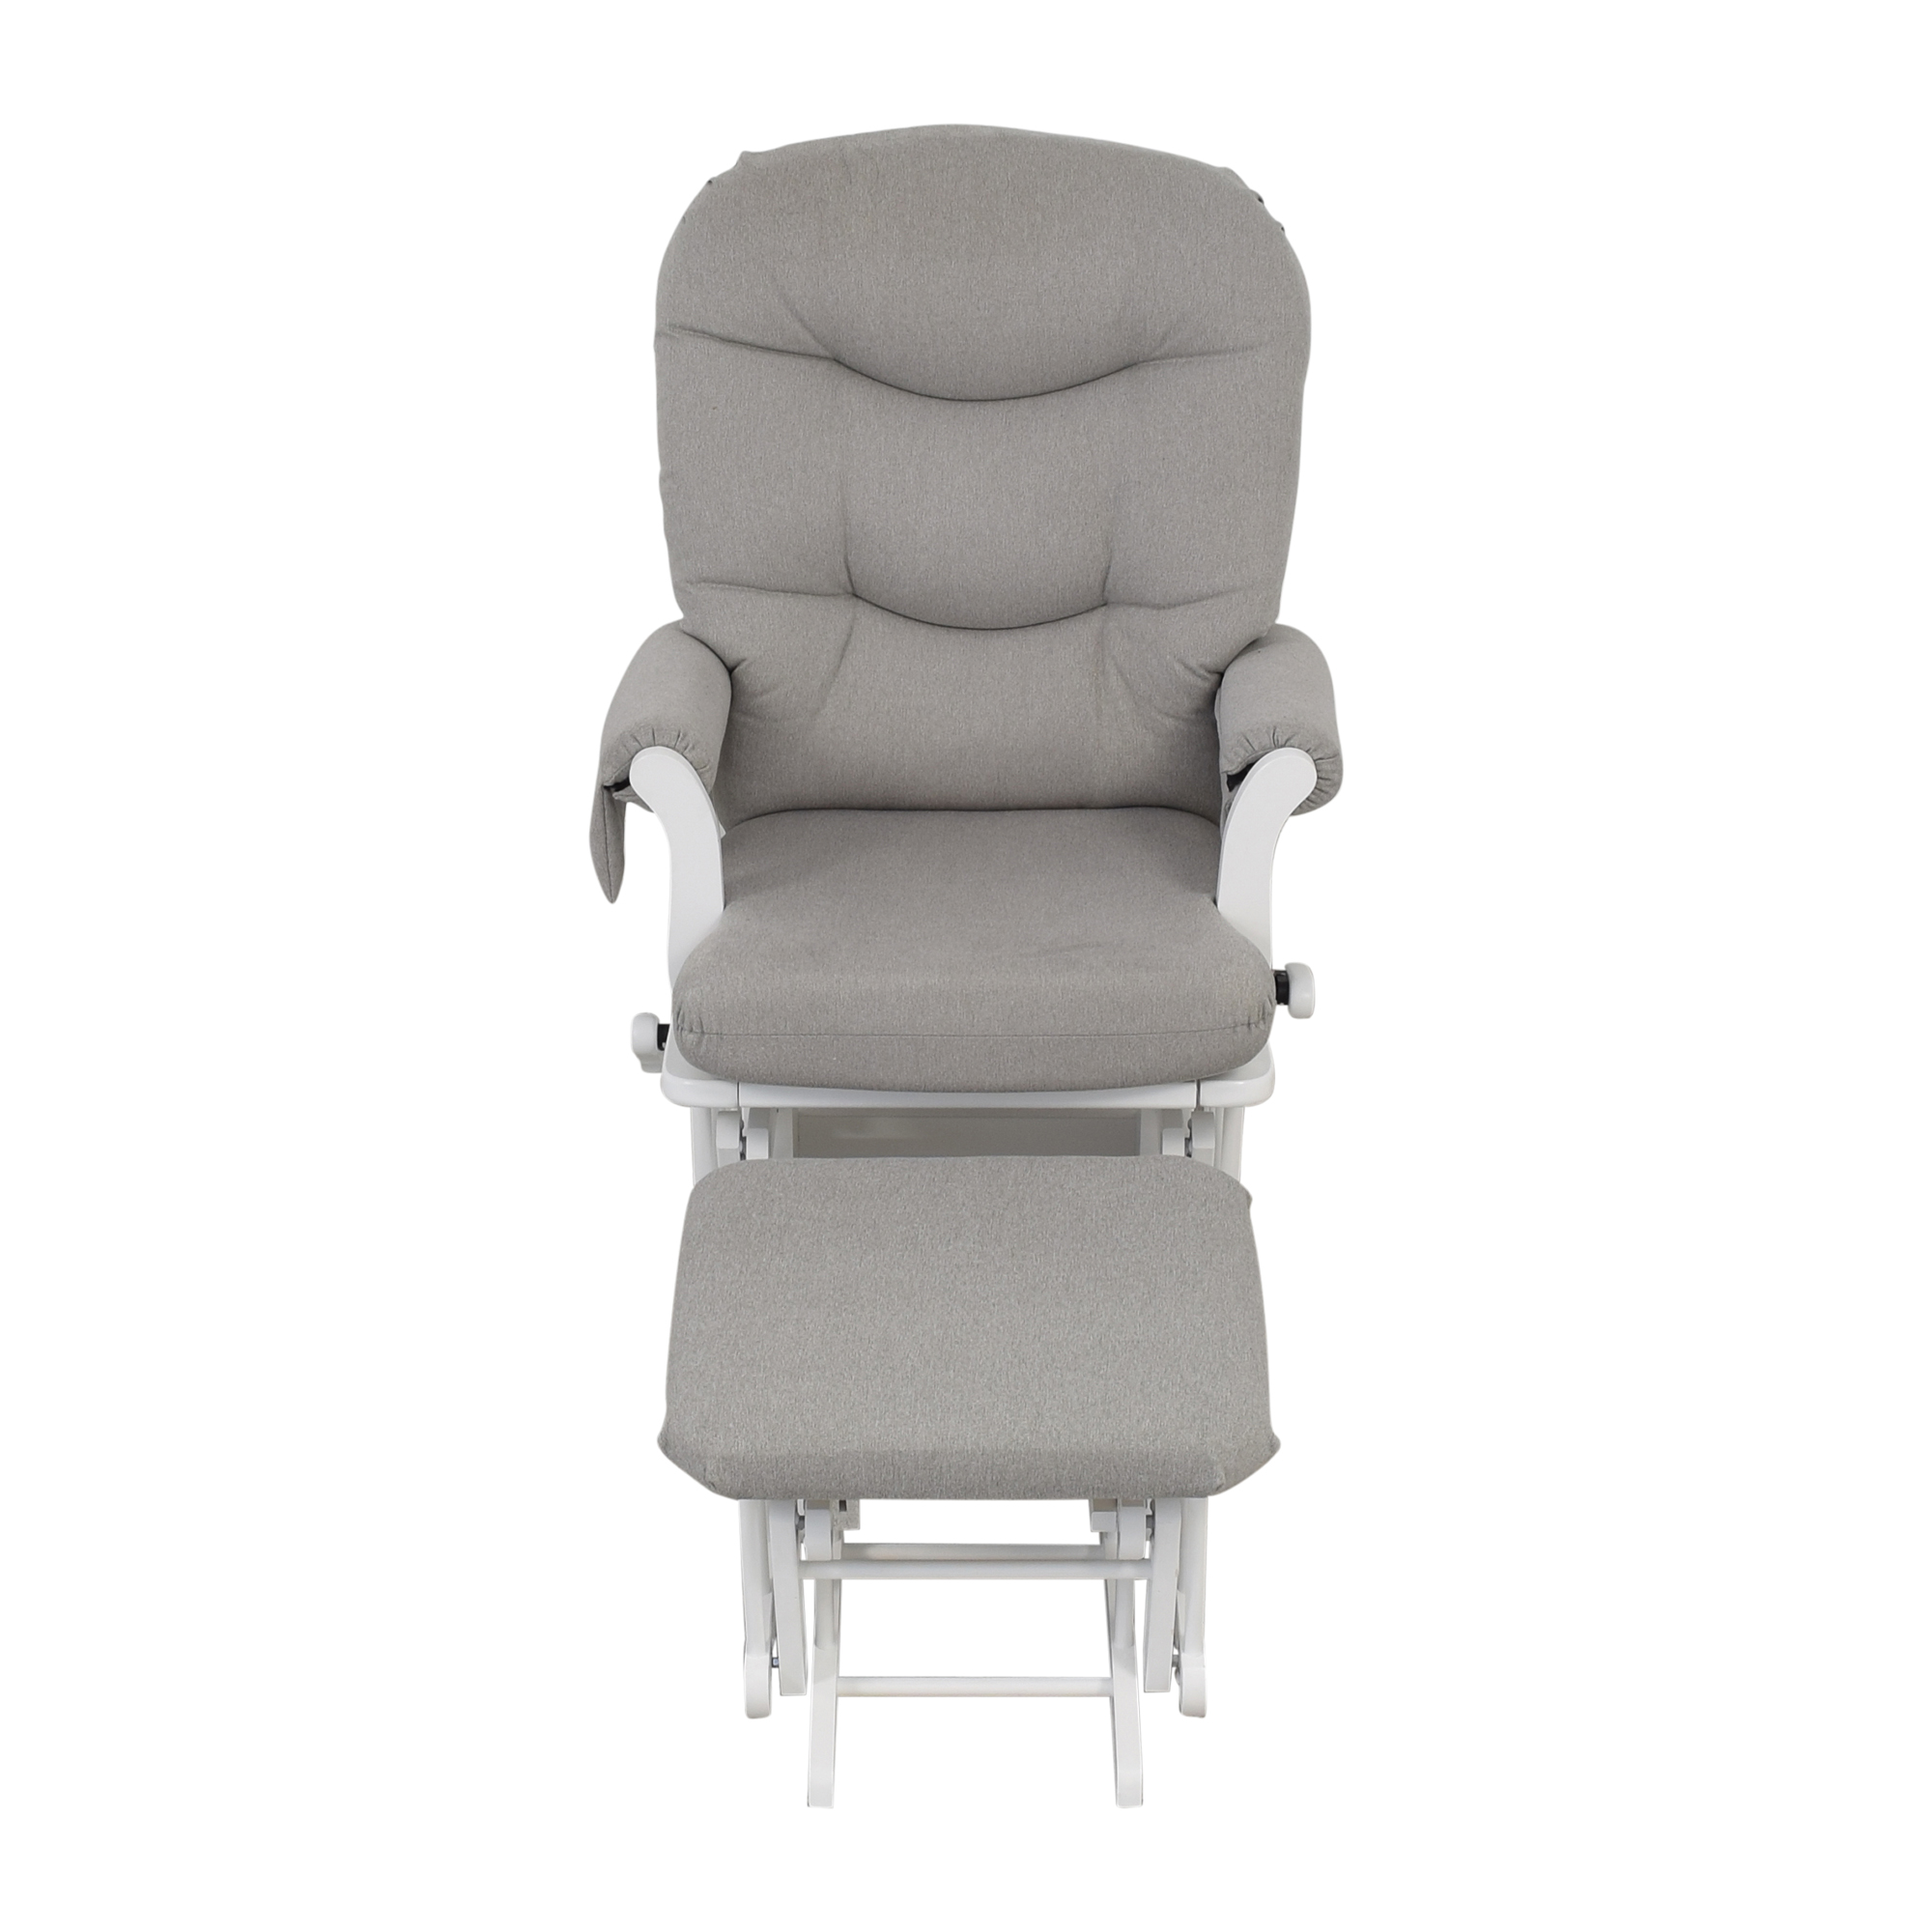 Dutailier Dutailier Multi-Position Reclining Sleigh Glider and Nursing Ottoman second hand